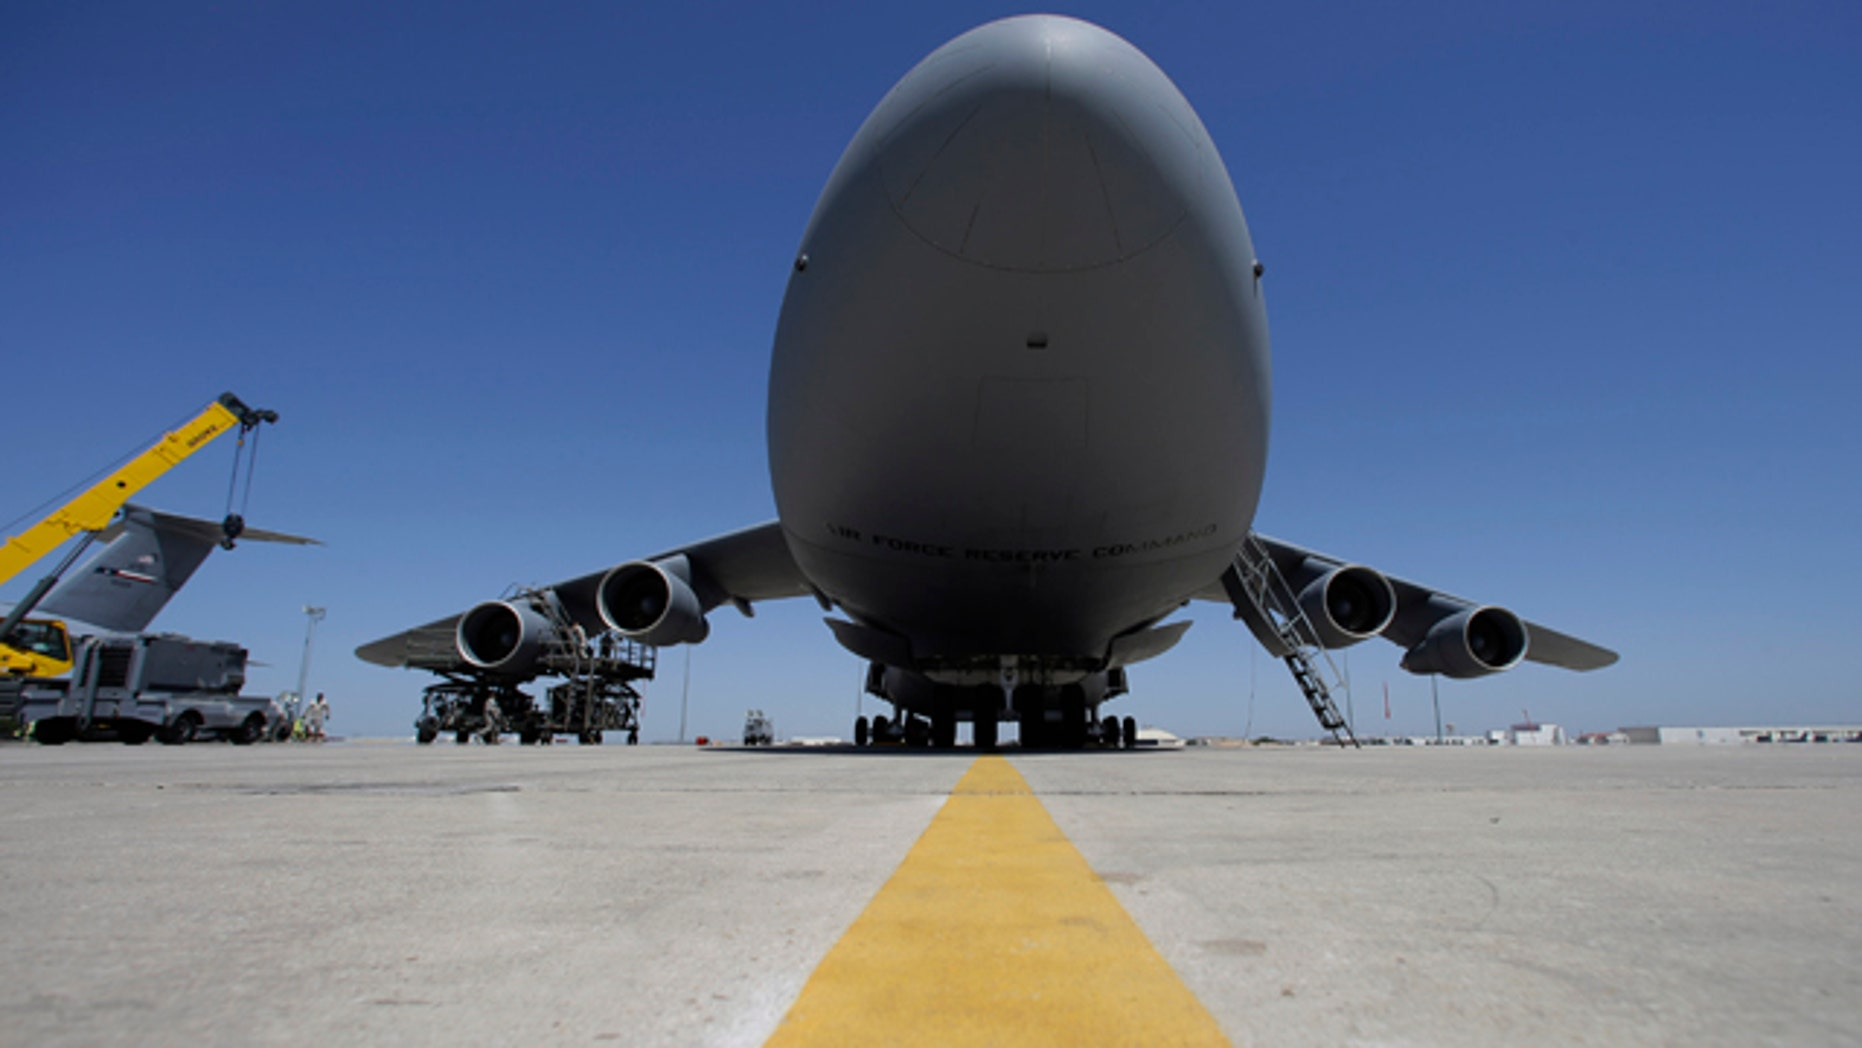 April 11, 2013: Mechanics work on a C-5A military transport aircraft at Lackland Air Force Base in San Antonio.